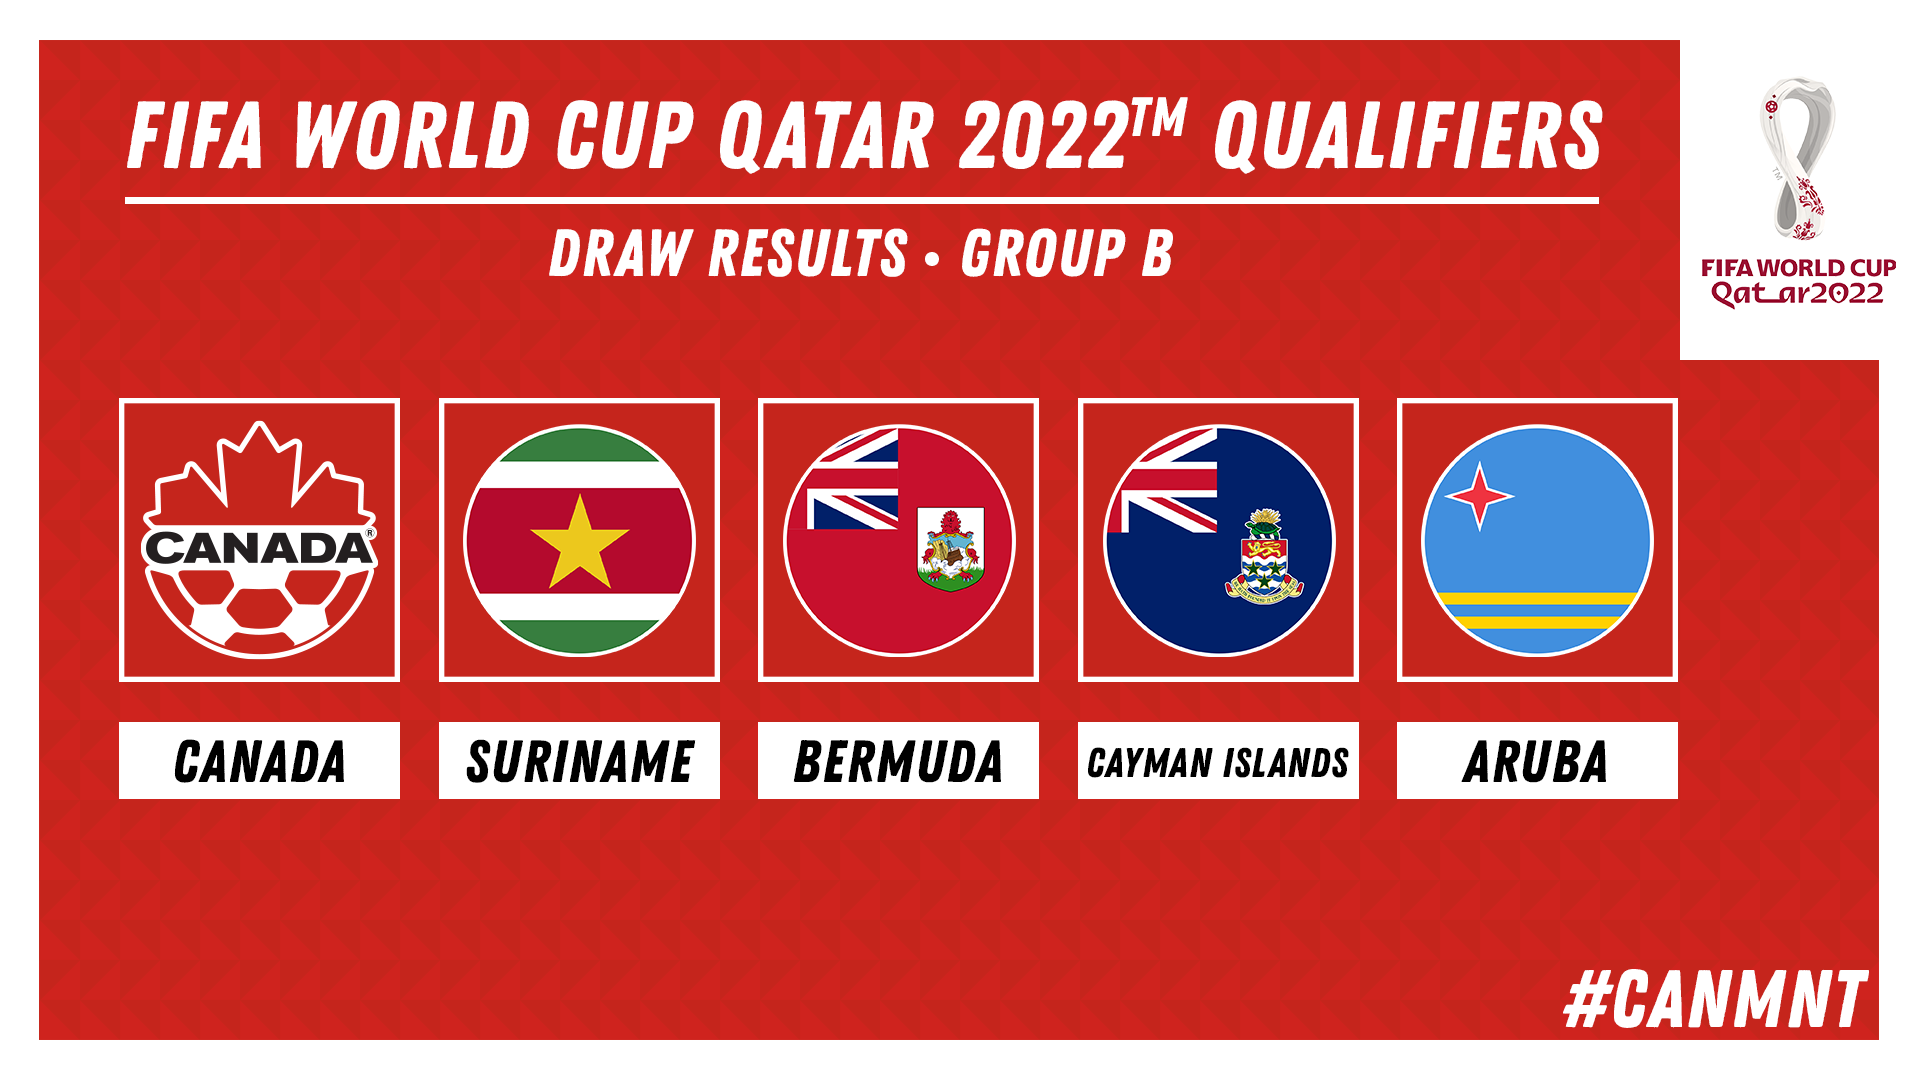 FIFA World Cup Qualifiers Draw Results for Canada